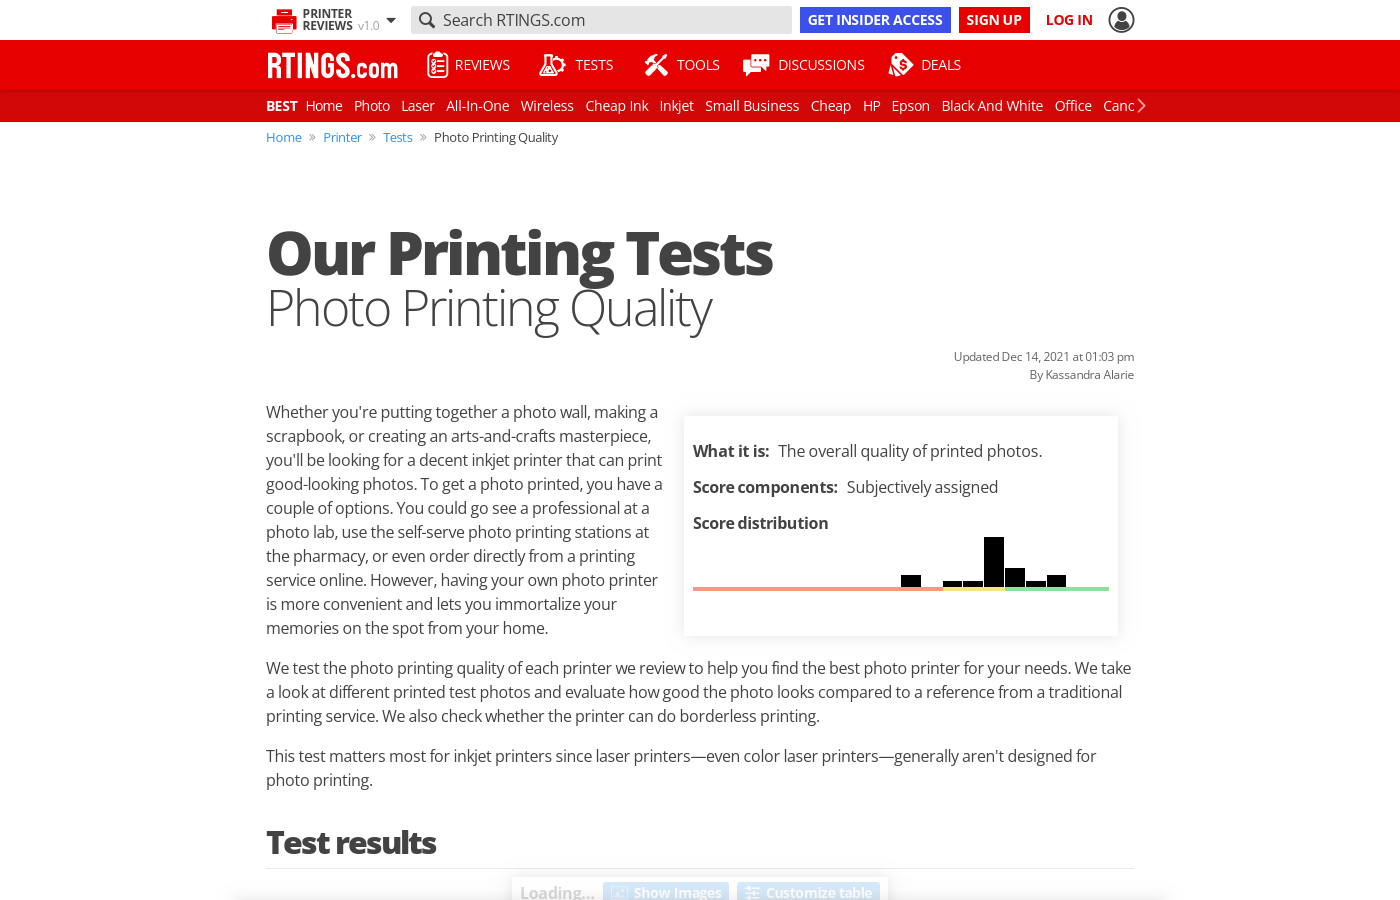 Our Photo Printing Quality Score and Tests: Printers